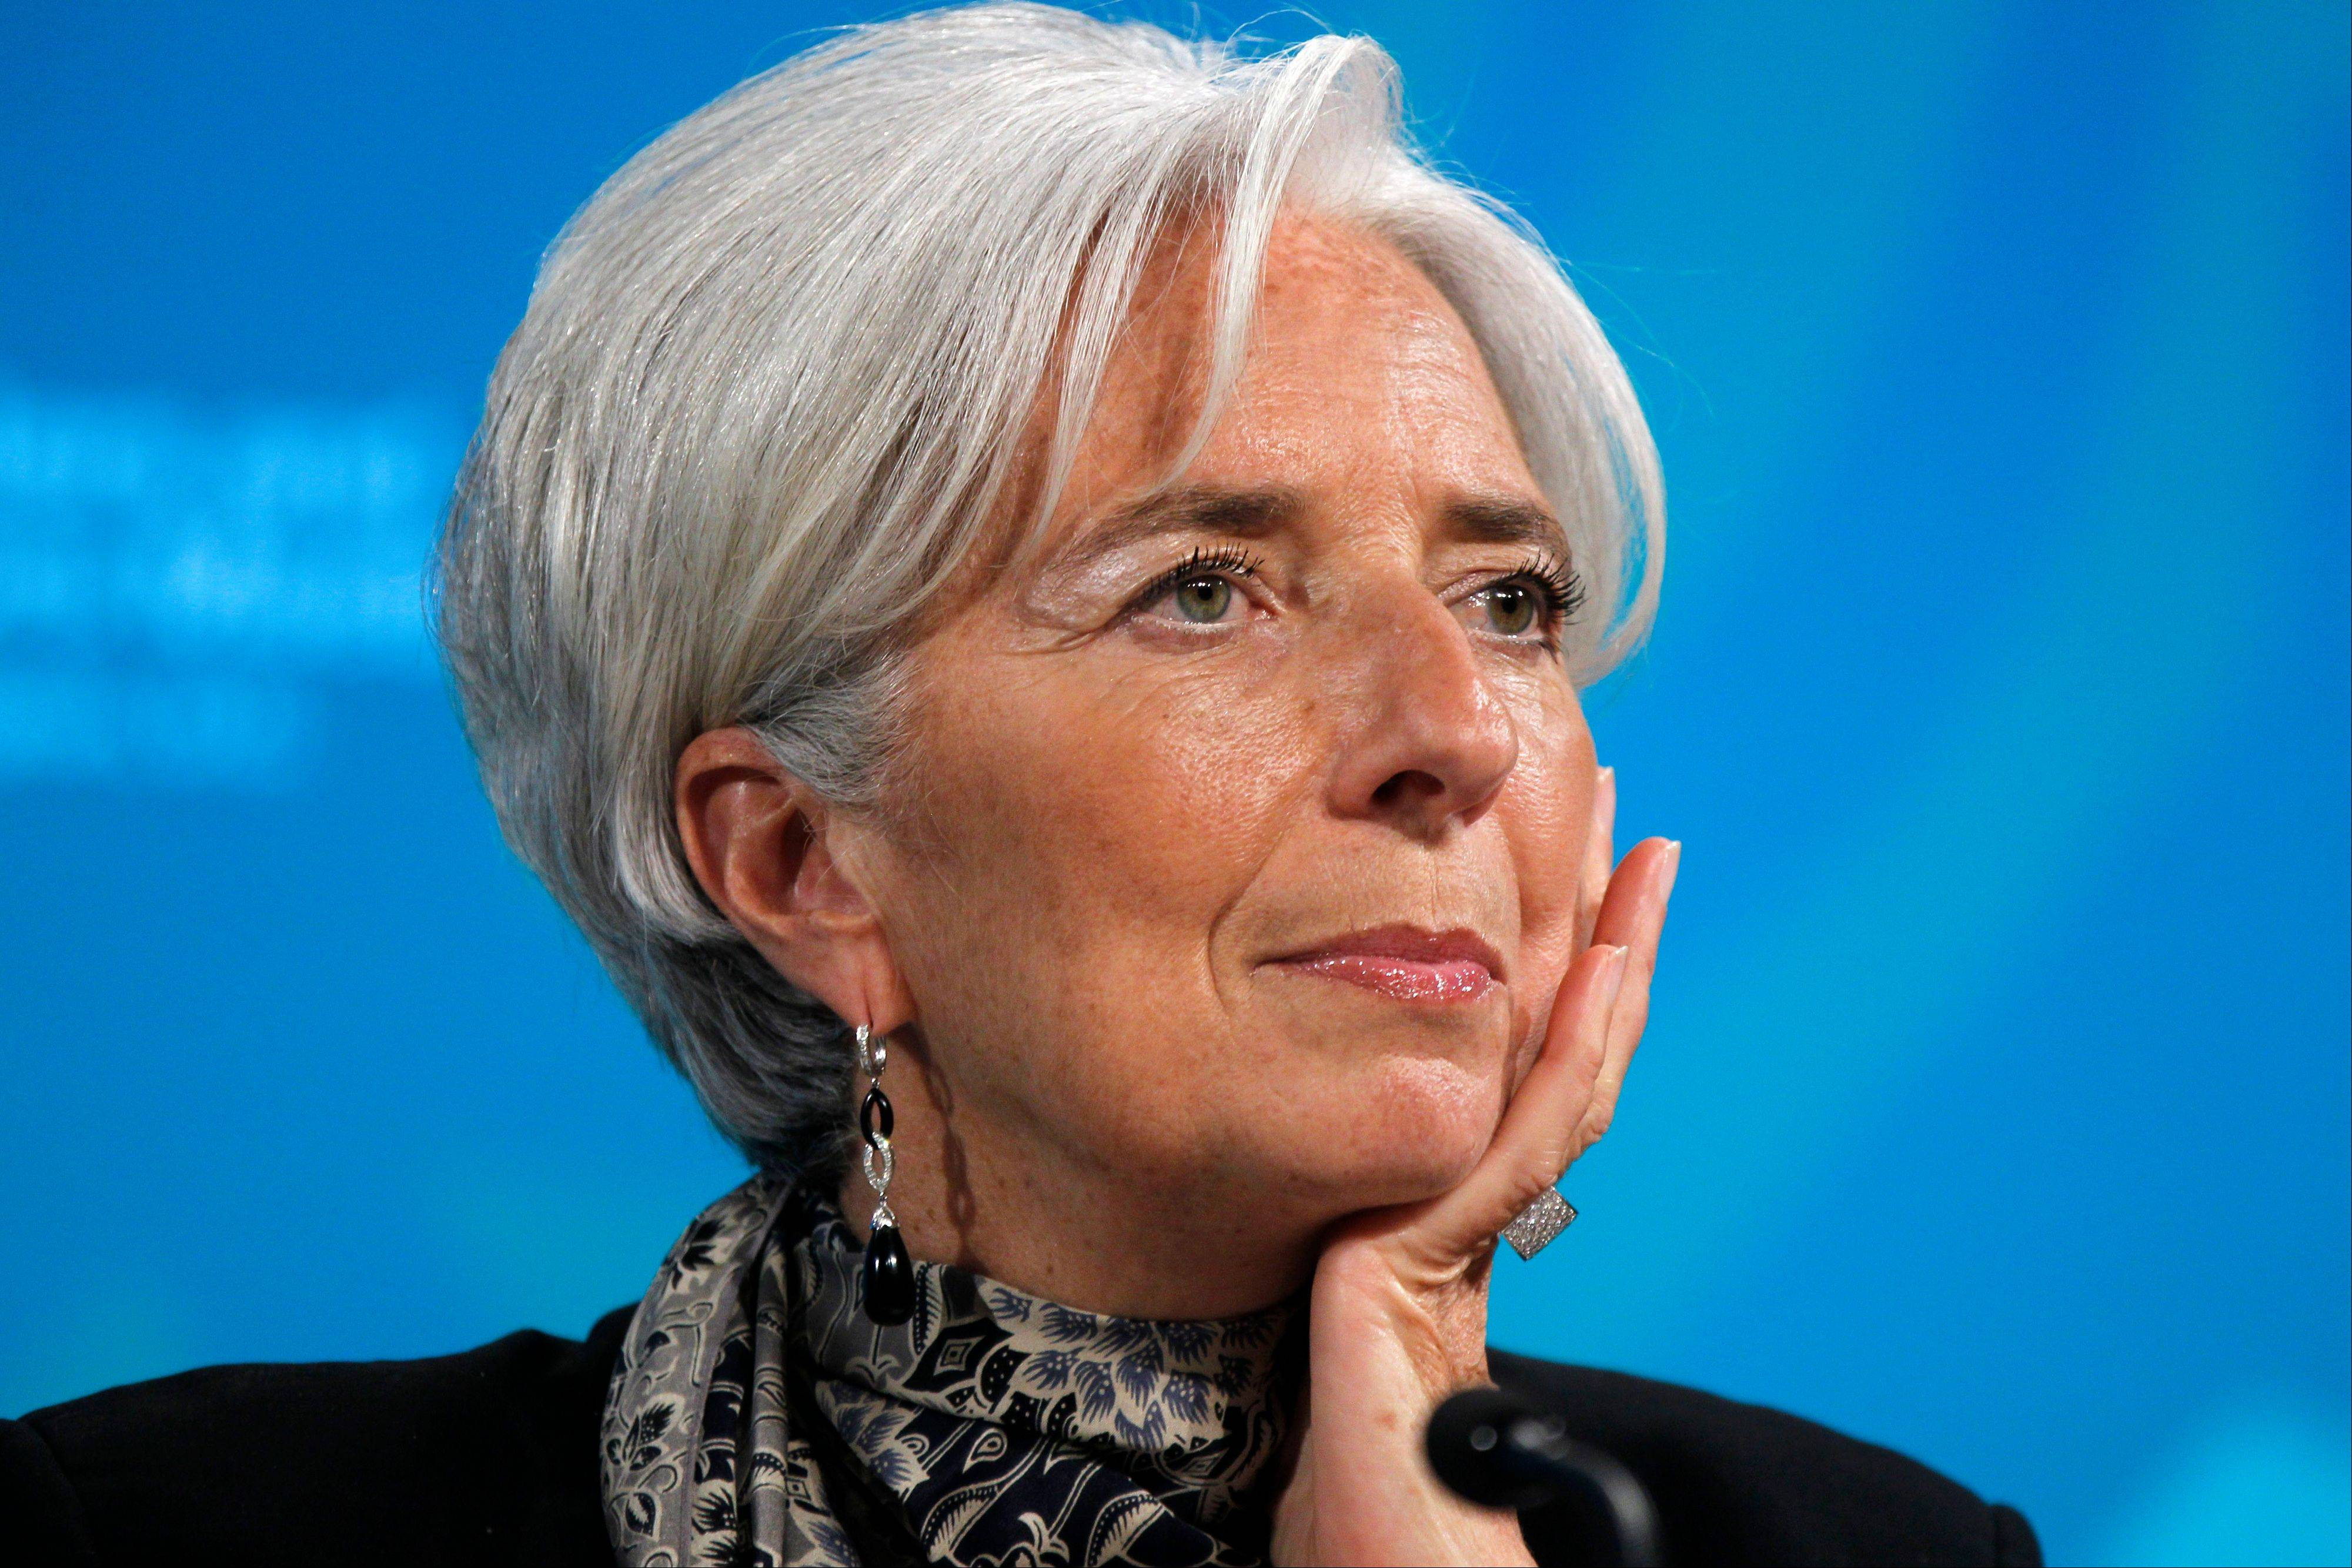 Christine Lagarde, managing director of the International Monetary Fund, helped engineer its largest and perhaps most controversial program — the rescue of the euro zone.